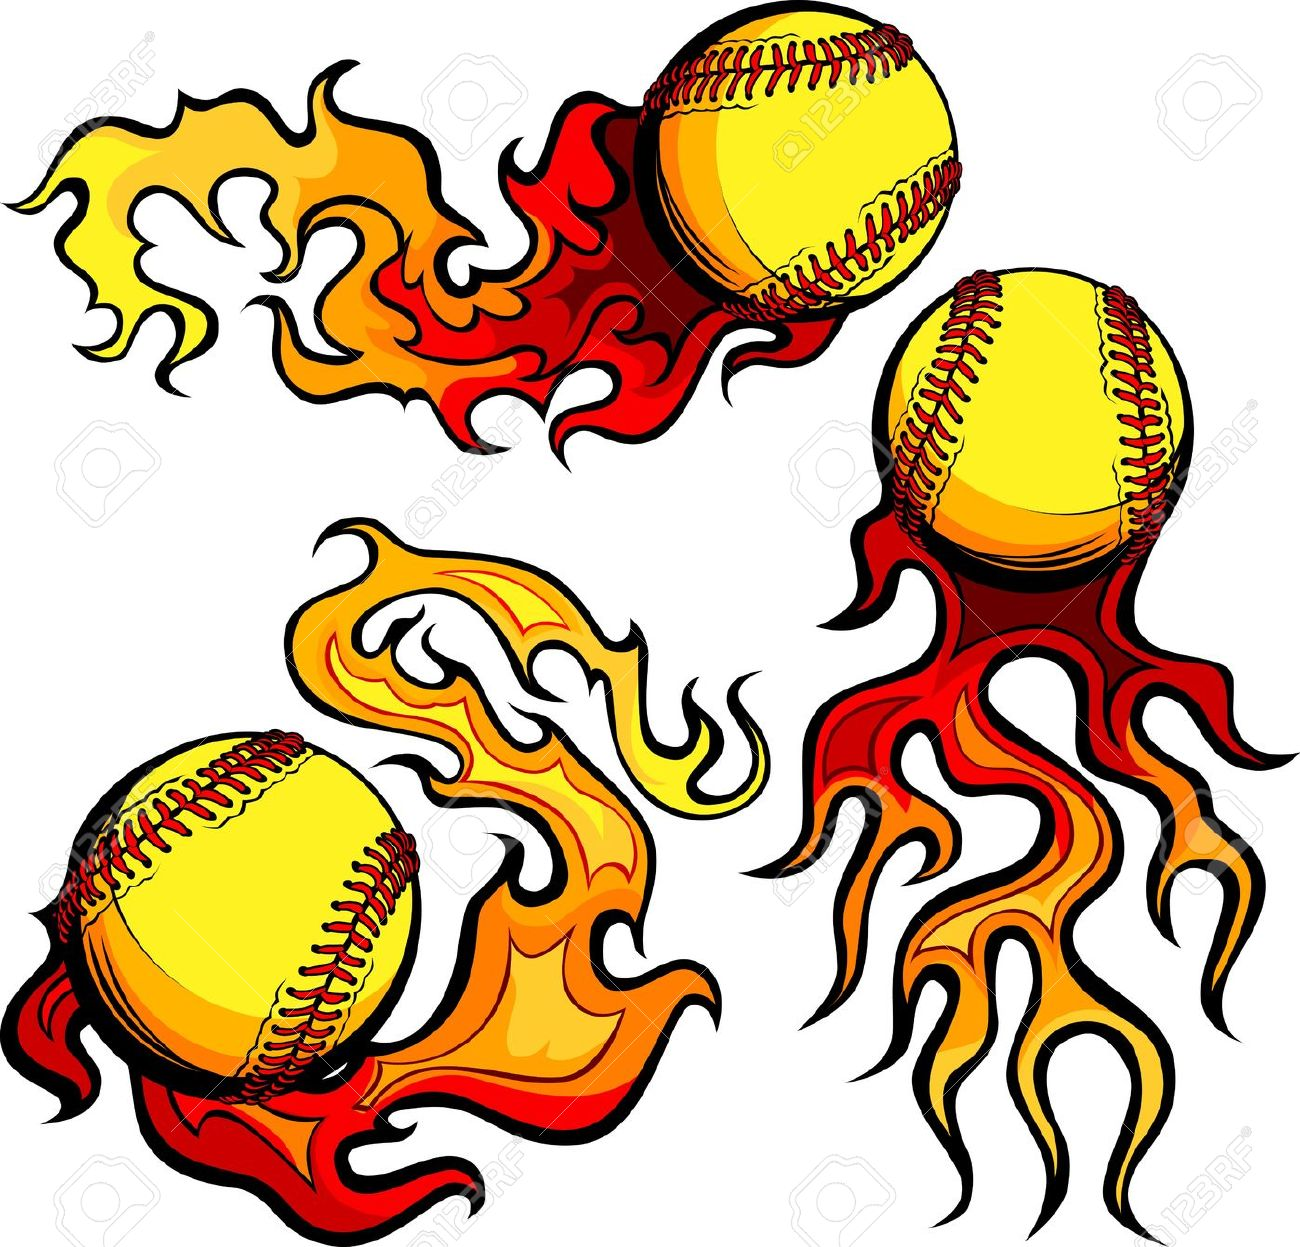 6,121 Softball Stock Vector Illustration And Royalty Free Softball.